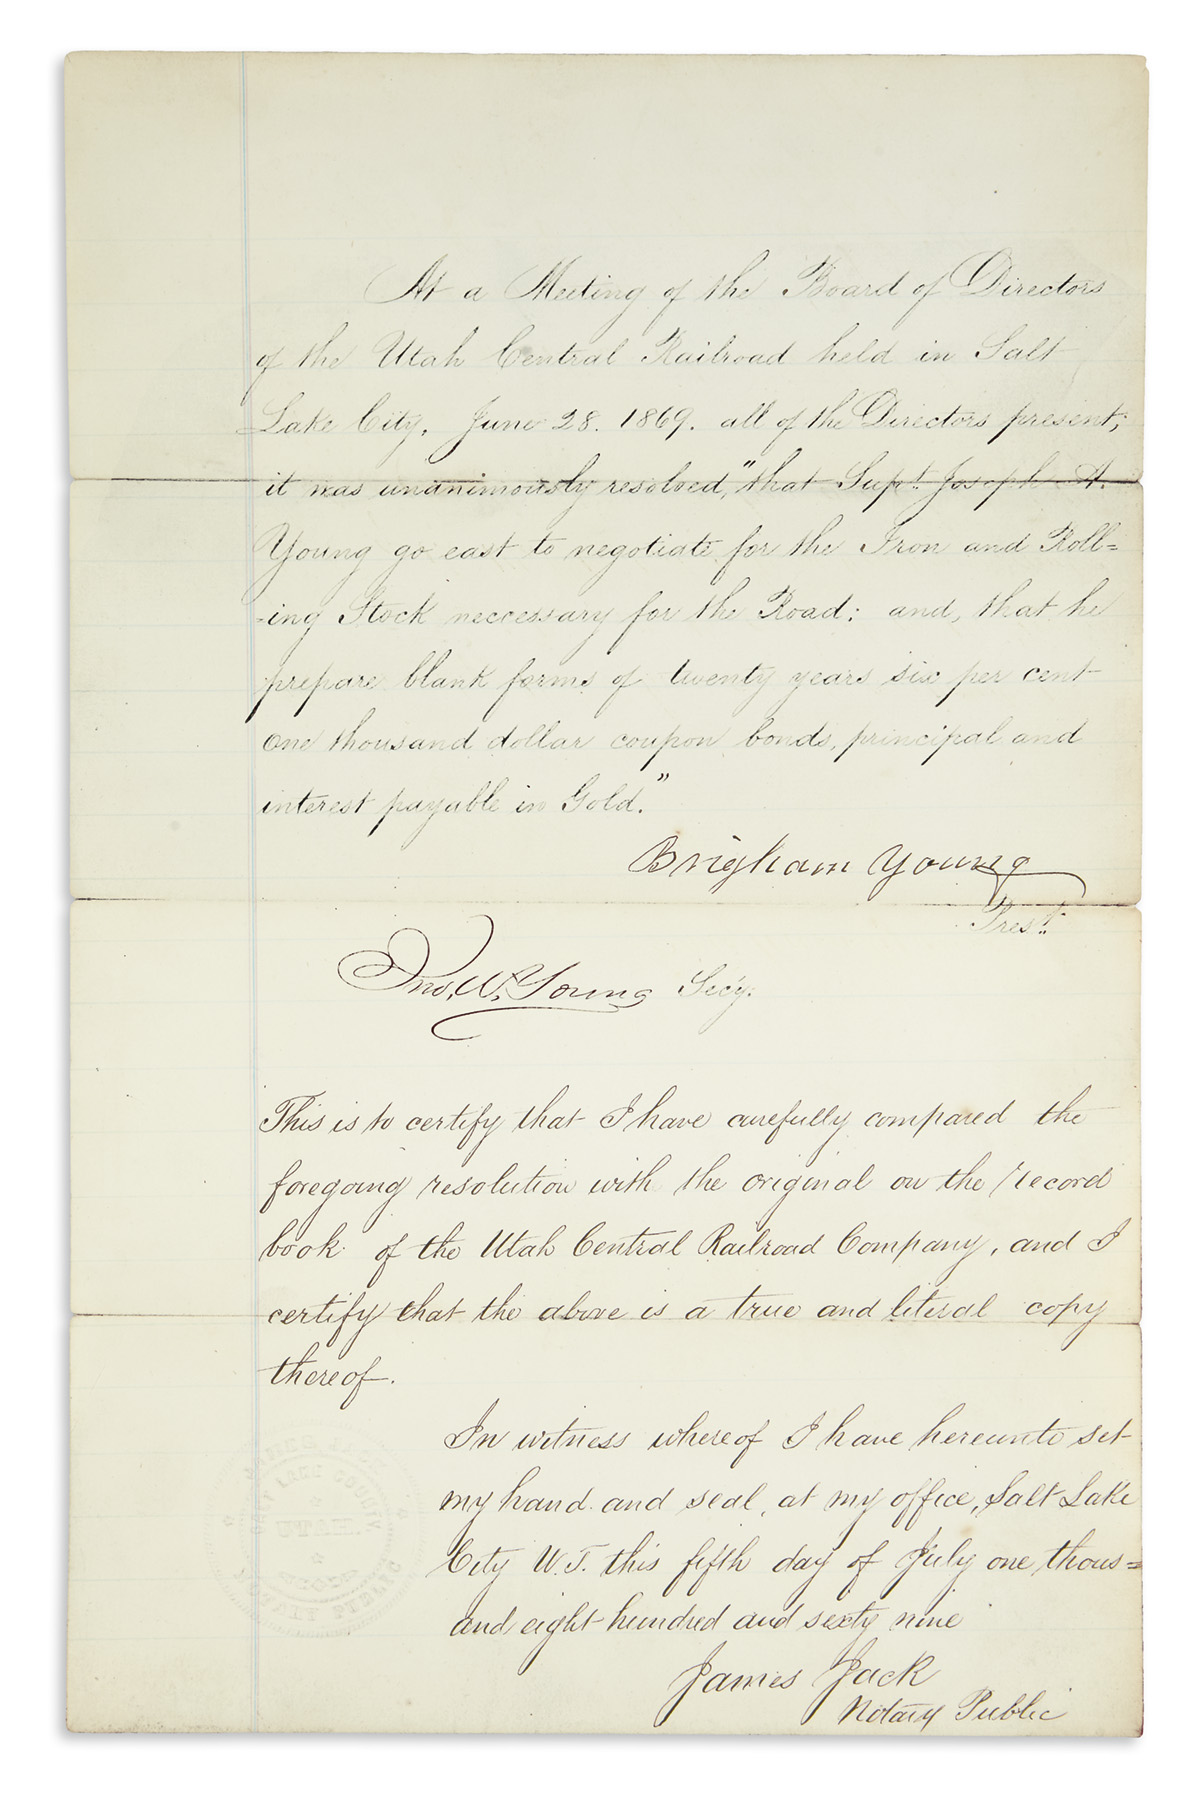 YOUNG-BRIGHAM-Document-Signed-as-President-of-the-Utah-Centr